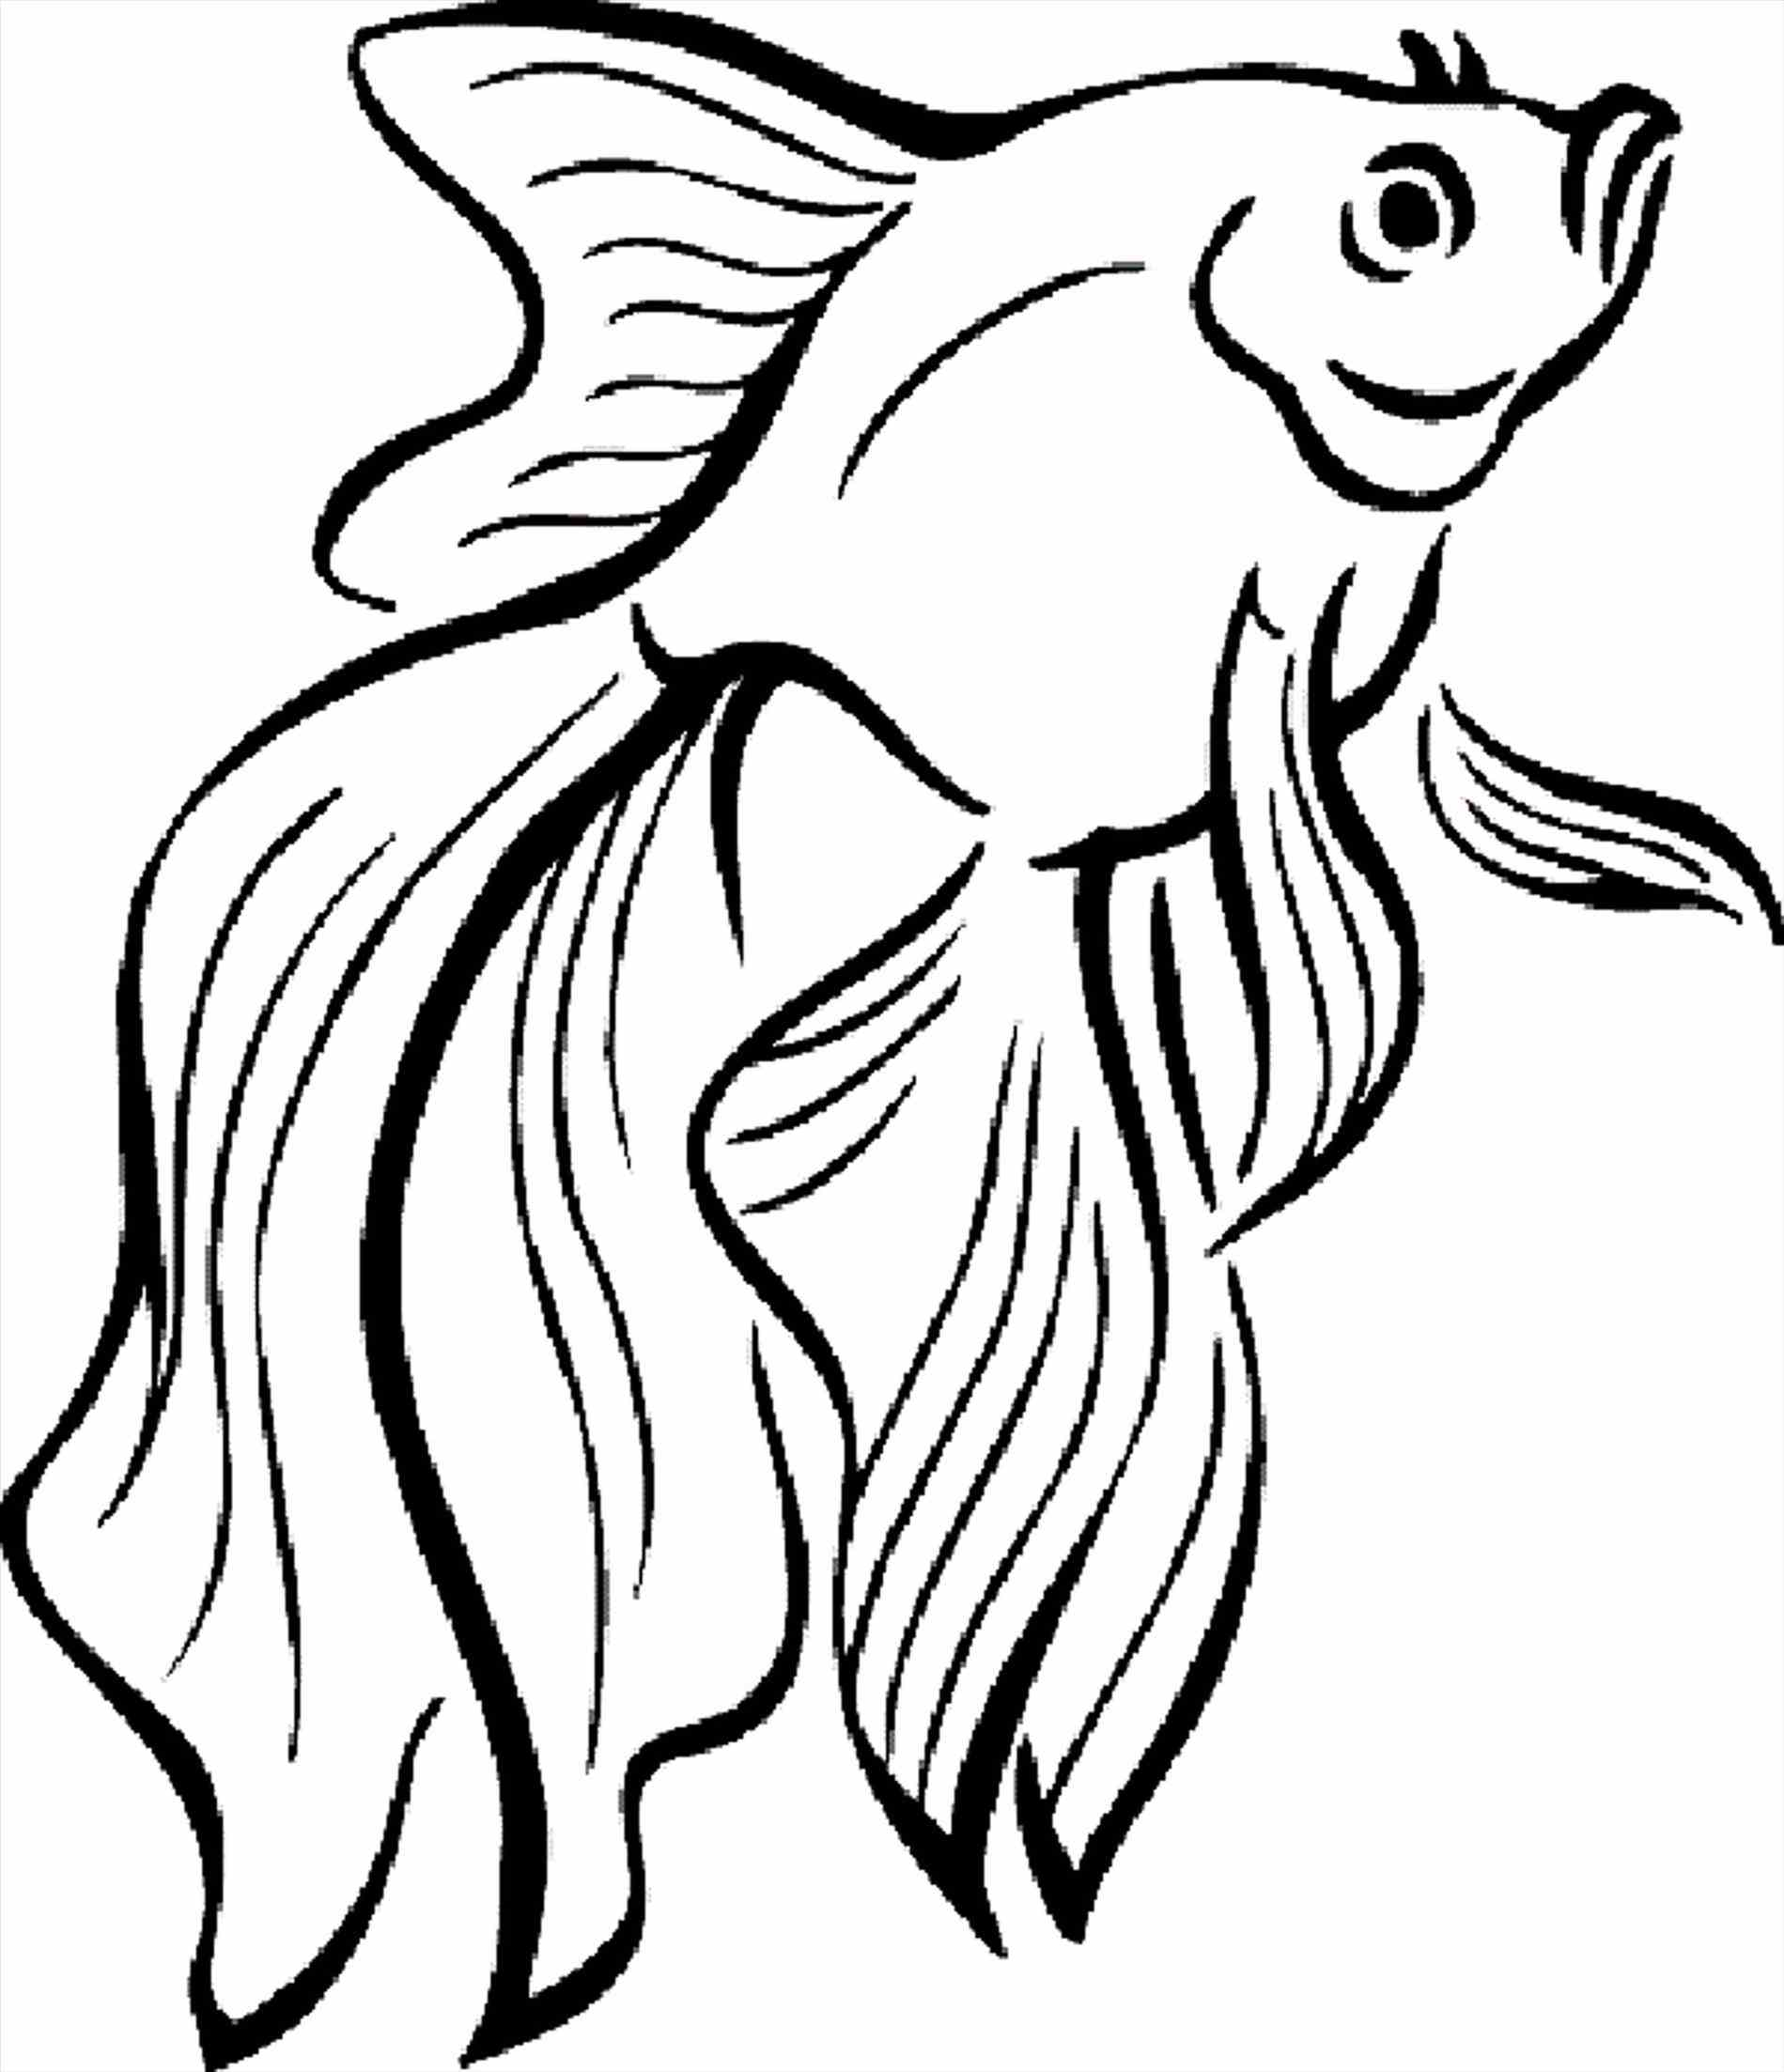 easy fish coloring pages simple clown fish coloring pages coloring pages for kids fish coloring easy pages